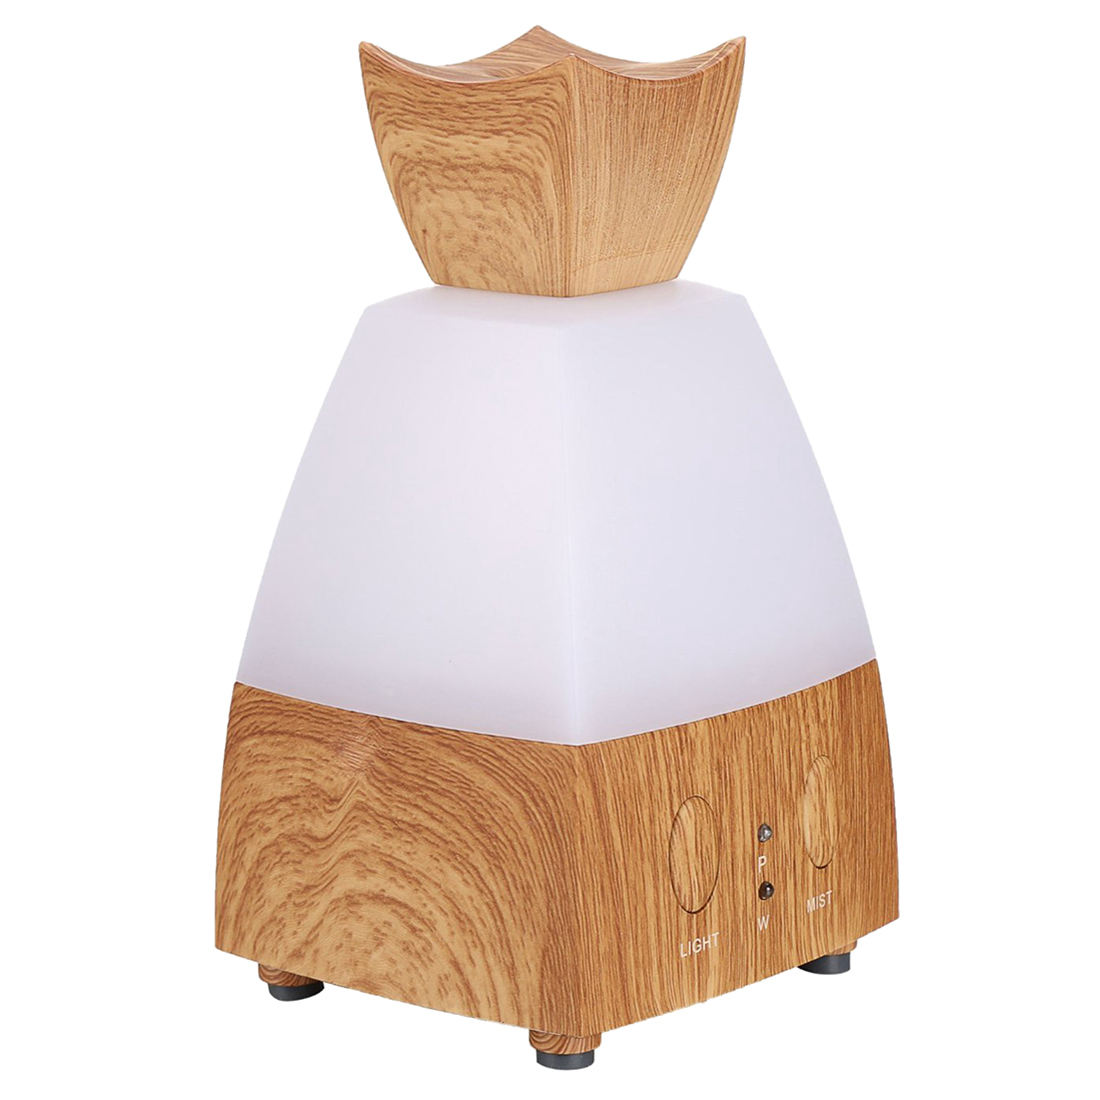 Aromatherapy Essential Oil Diffuser - Portable USB Ultrasonic Aroma Humidifier (Square-100ml Light-wood-color) hot sale humidifier aromatherapy essential oil 100 240v 100ml water capacity 20 30 square meters ultrasonic 12w 13 13 9 5cm